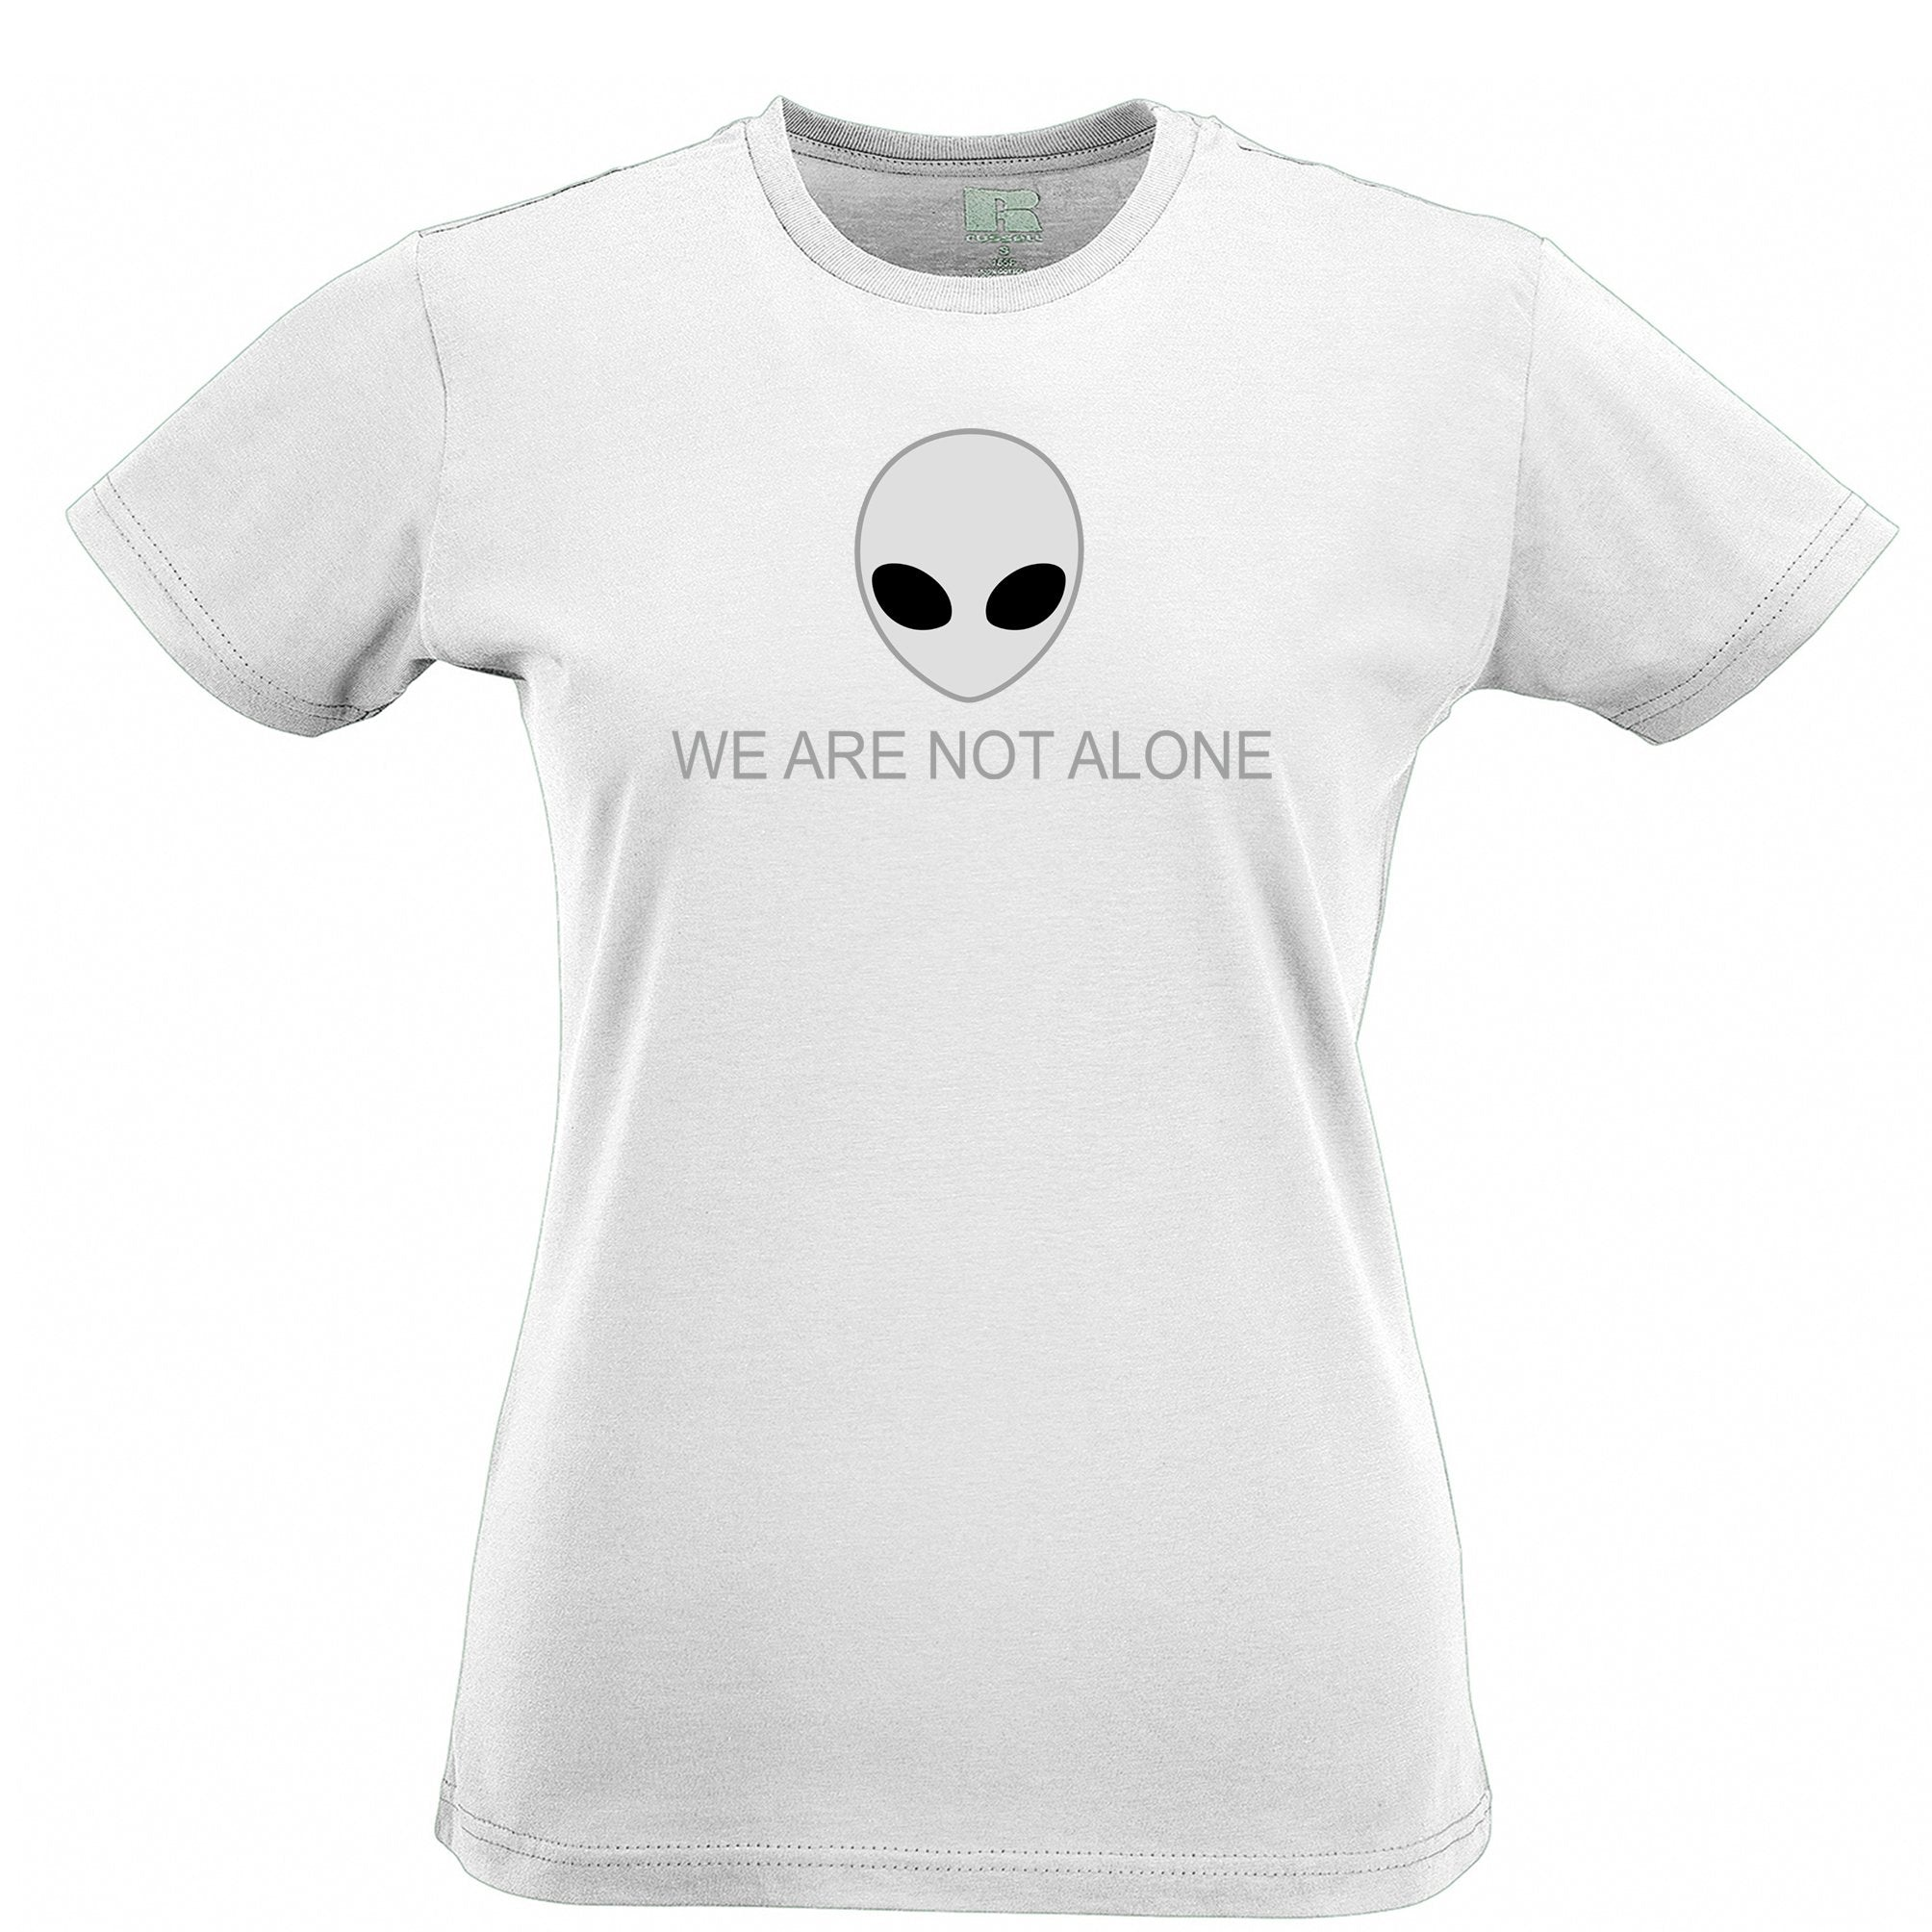 Nerdy Alien Head Womens T Shirt We Are Not Alone Slogan